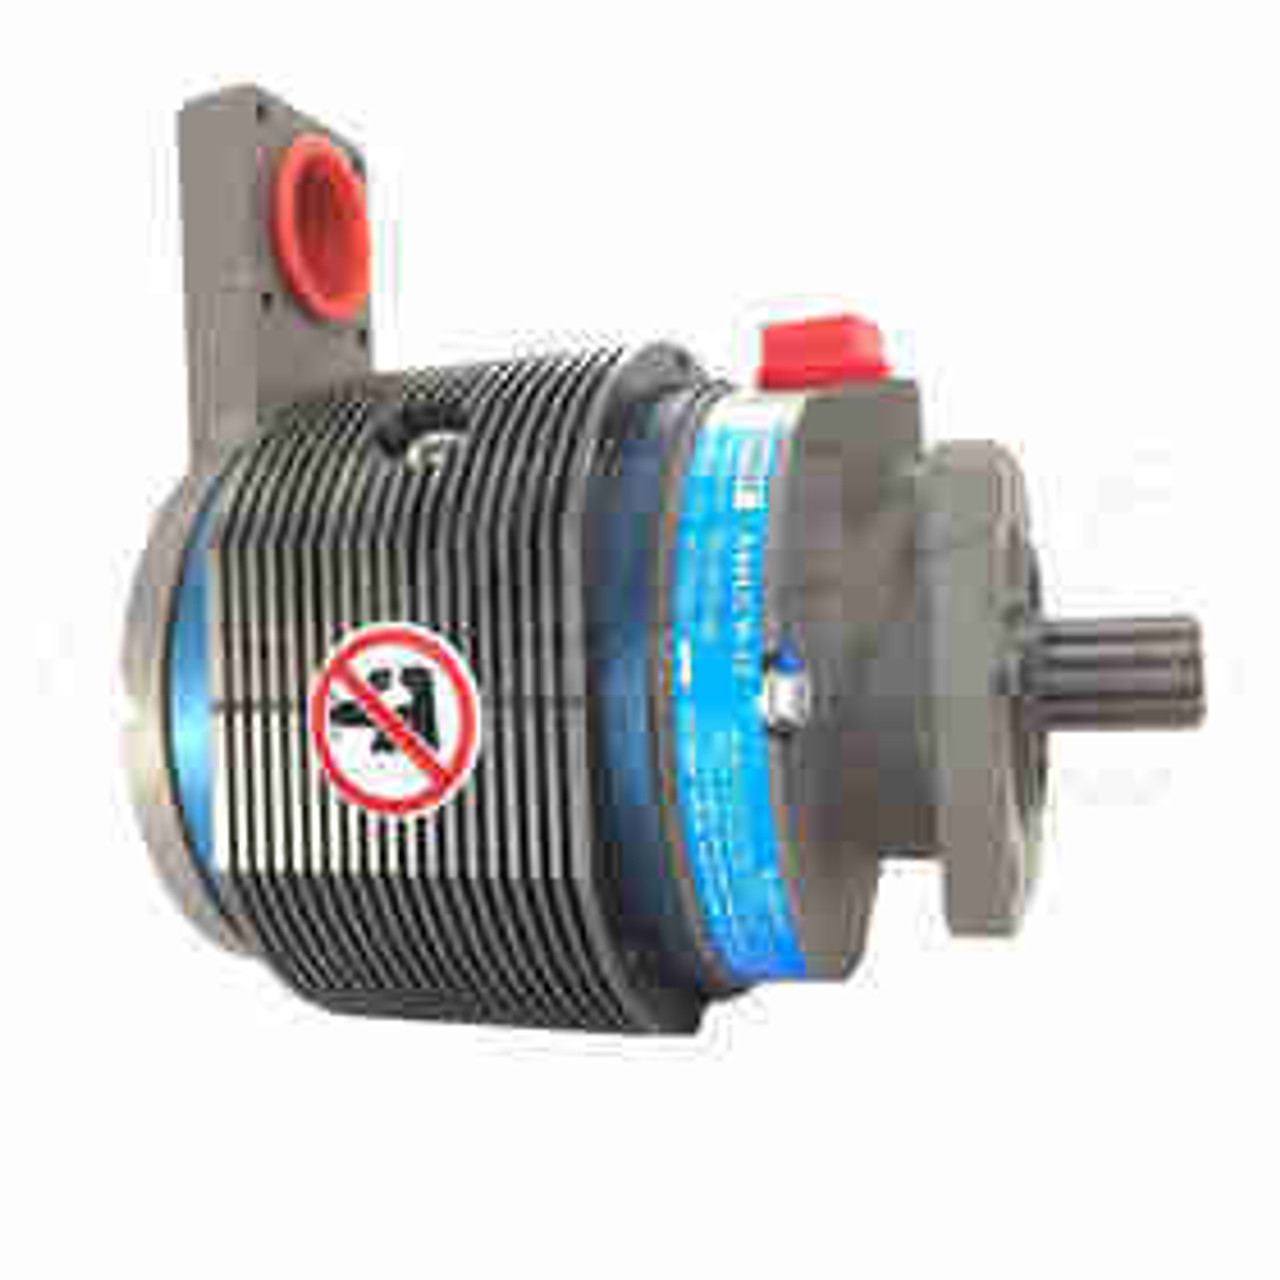 Tempest AA442CW12 Dry Air Pump Part#: AA442CW12